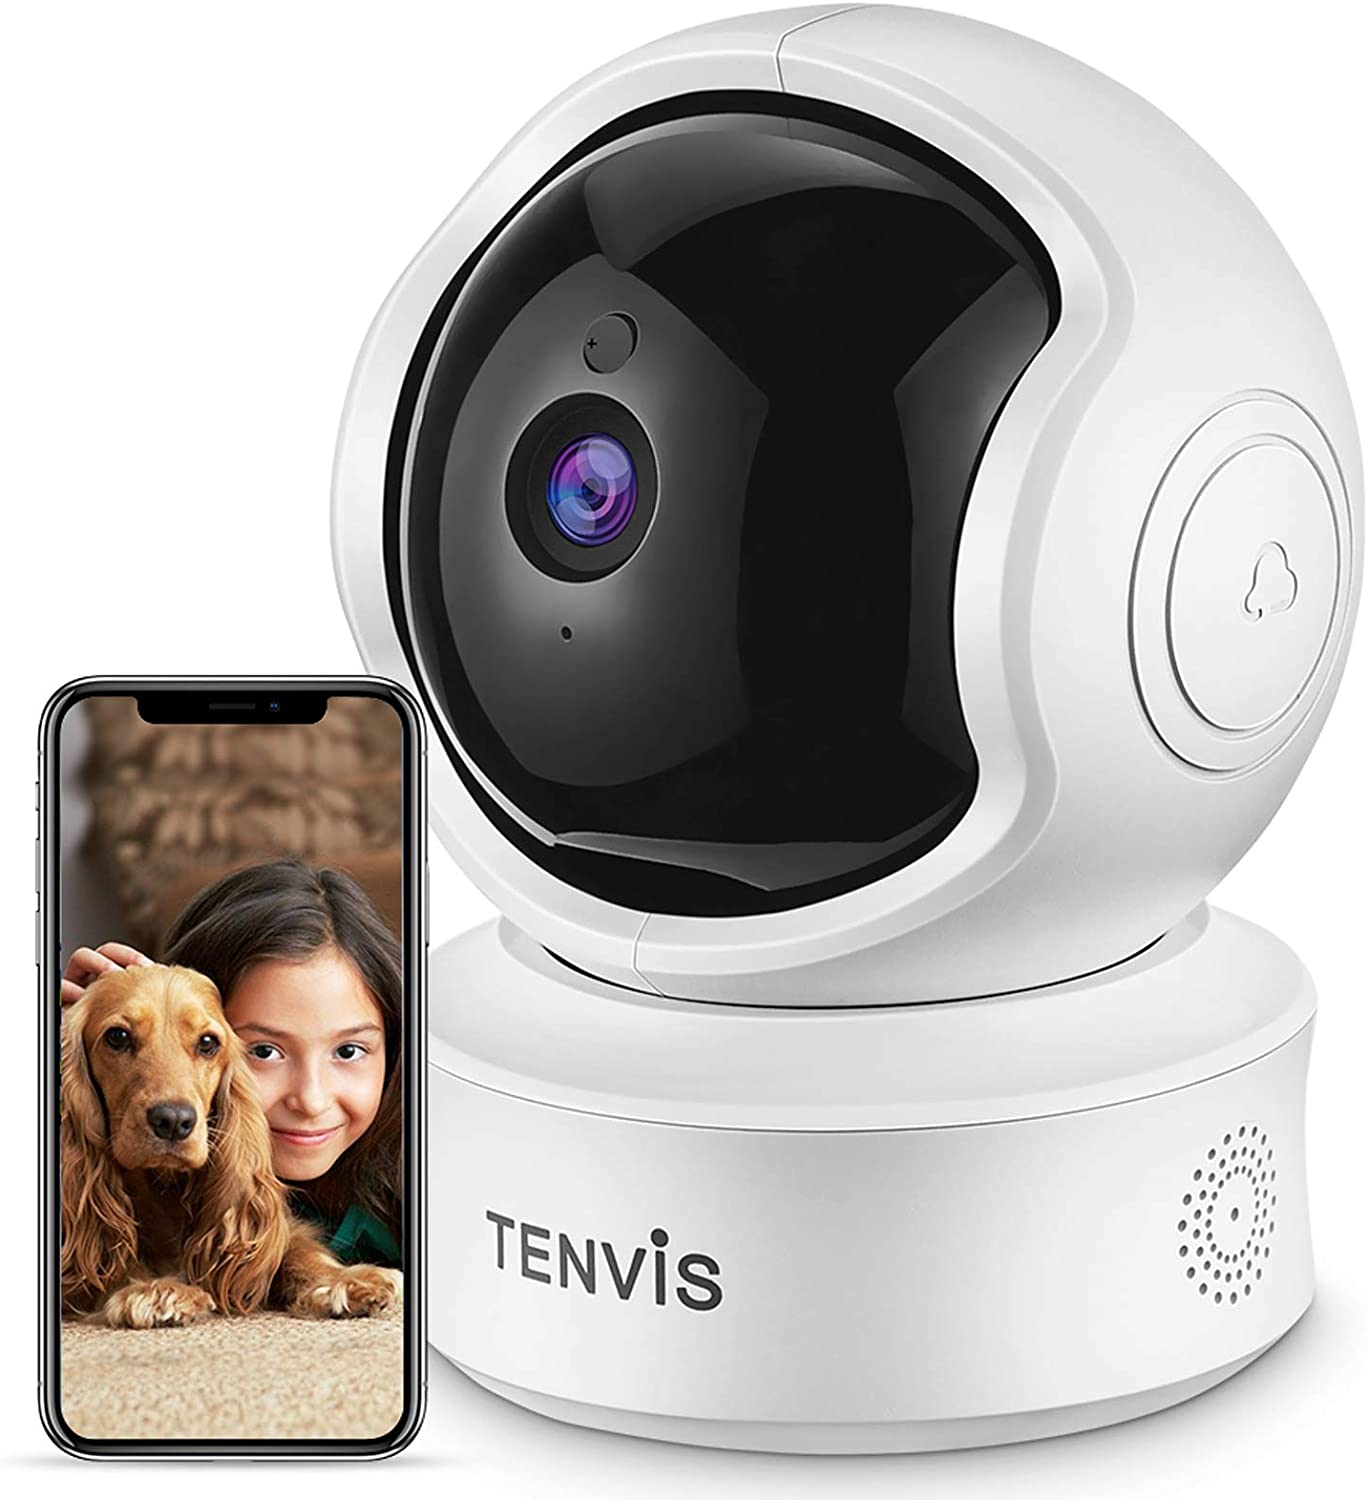 2K 3MP Indoor Security Camera - TENVIS Pet Camera Two Way Audio, Sound/AI Motion Detection&Auto Tracking, Home WiFi Camera Pan/Tilt Baby Monitor Camera, Night Vision, Cloud Storage, Works with Alexa